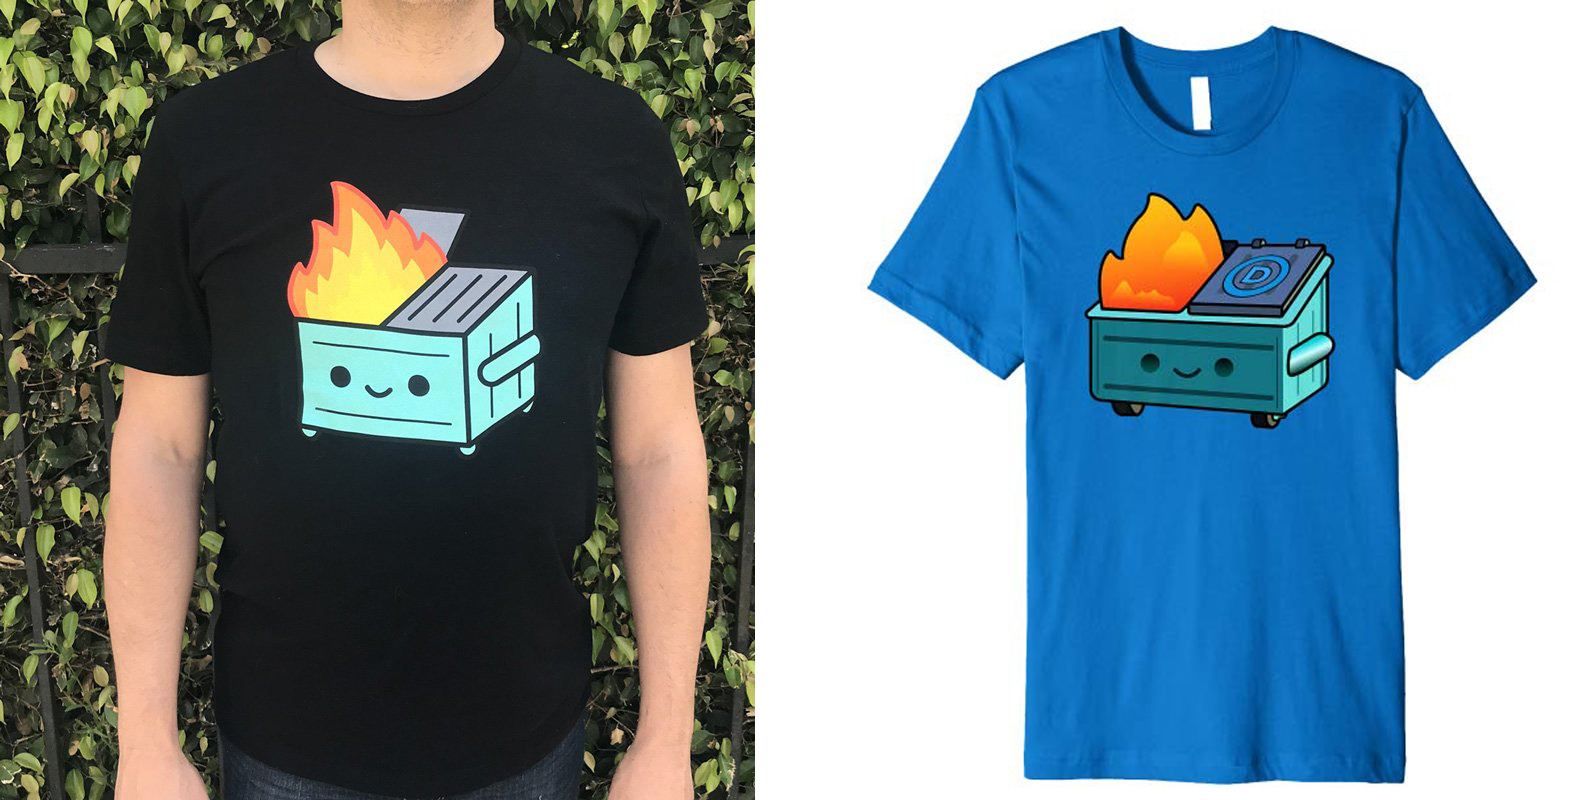 Shirt at conservative website suspiciously similar to indie artist's design, but with a D on it